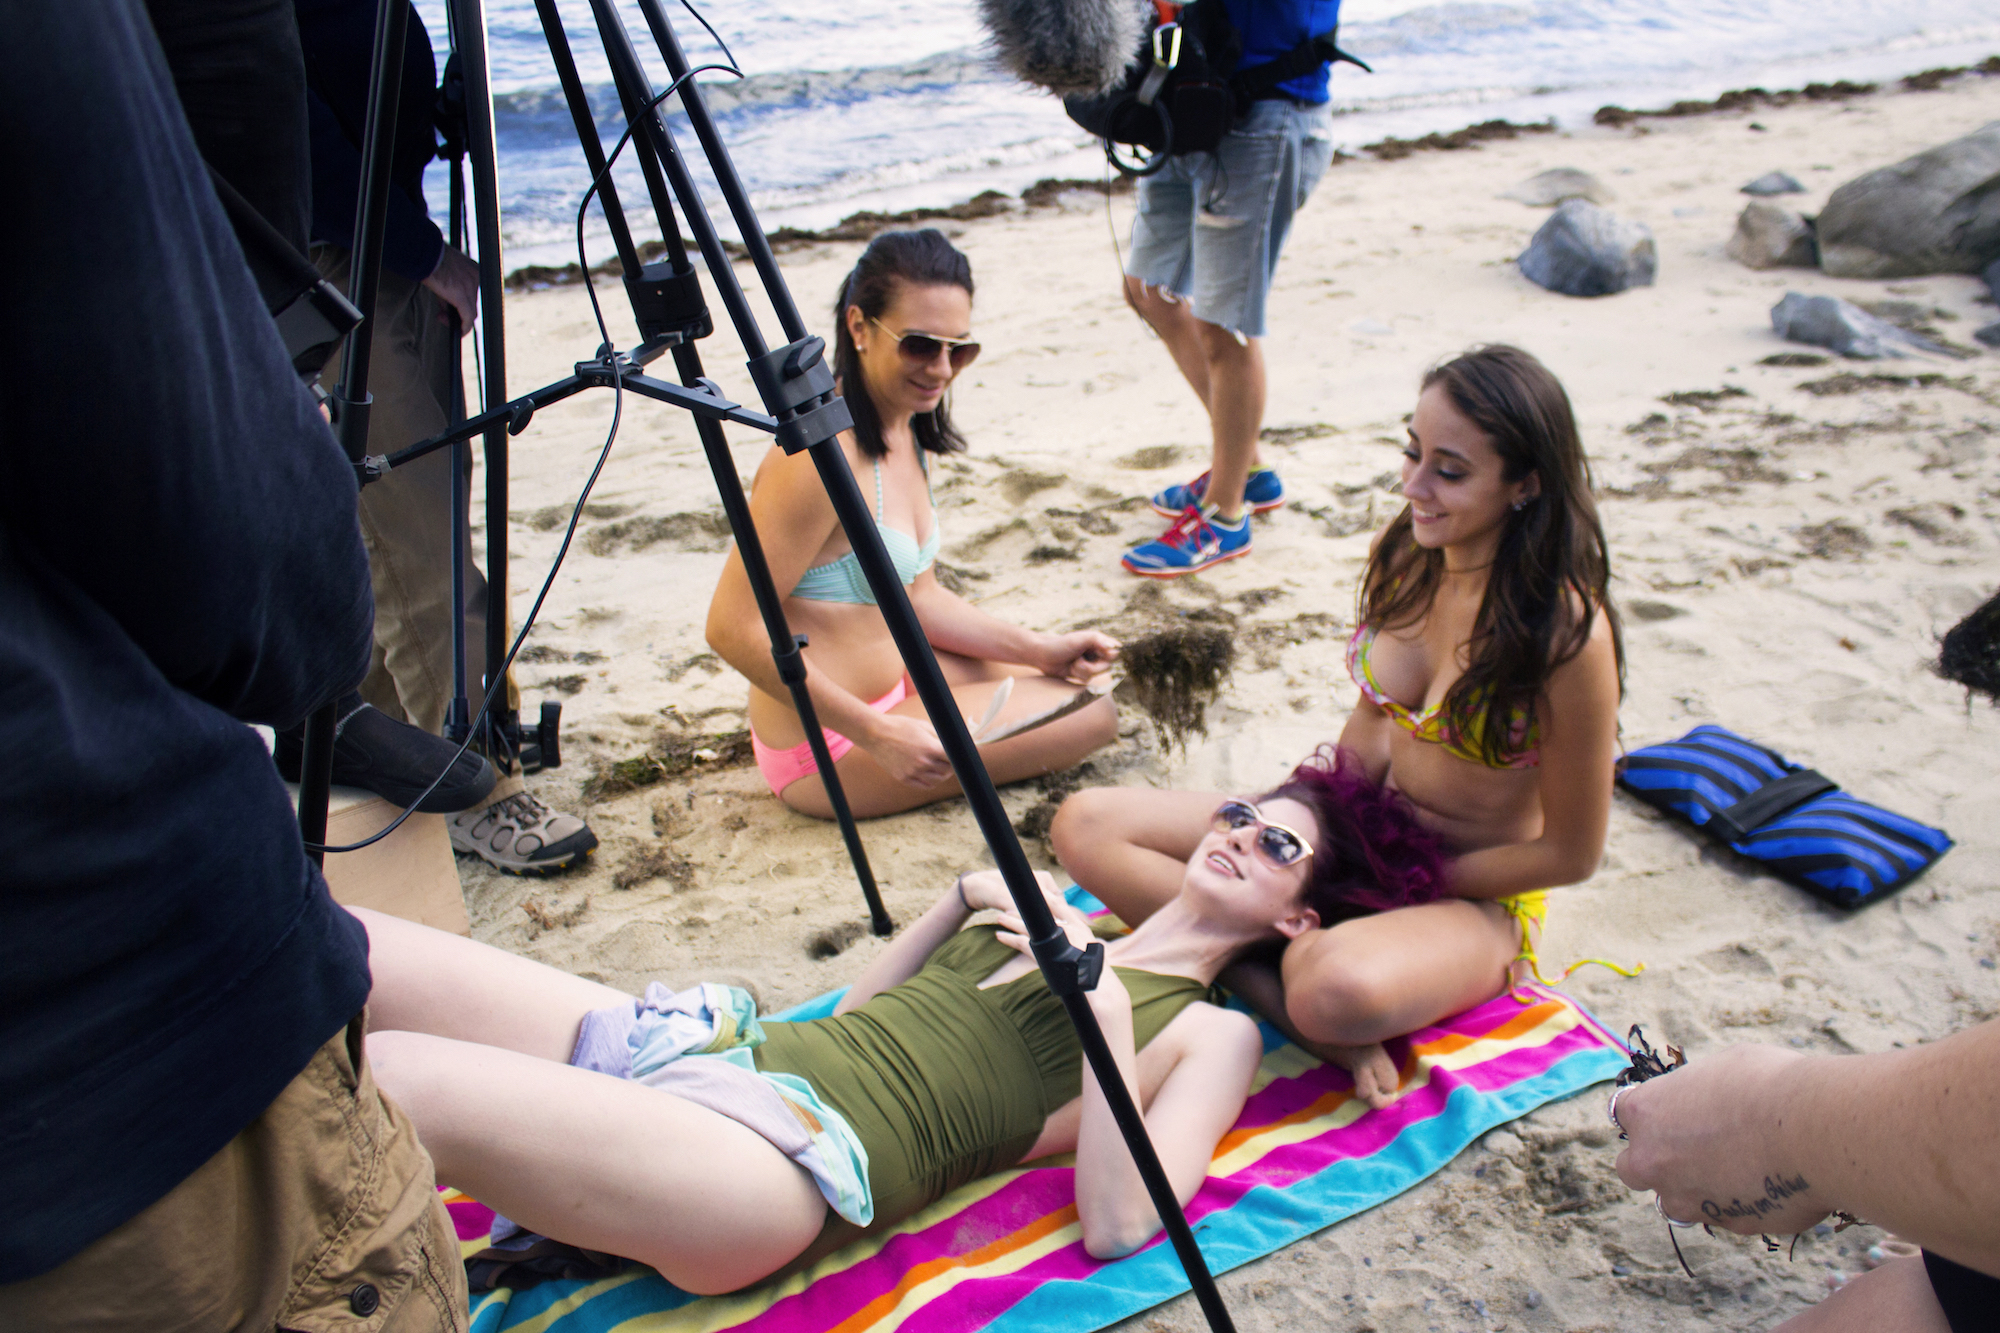 Actors Catalina Snape and Acei Martin take position for the Geena Matuson's new 'reel' promo on the set of her production for comedic 'beach ads,' part of her 'Fauxmercials' series filming through 2017.